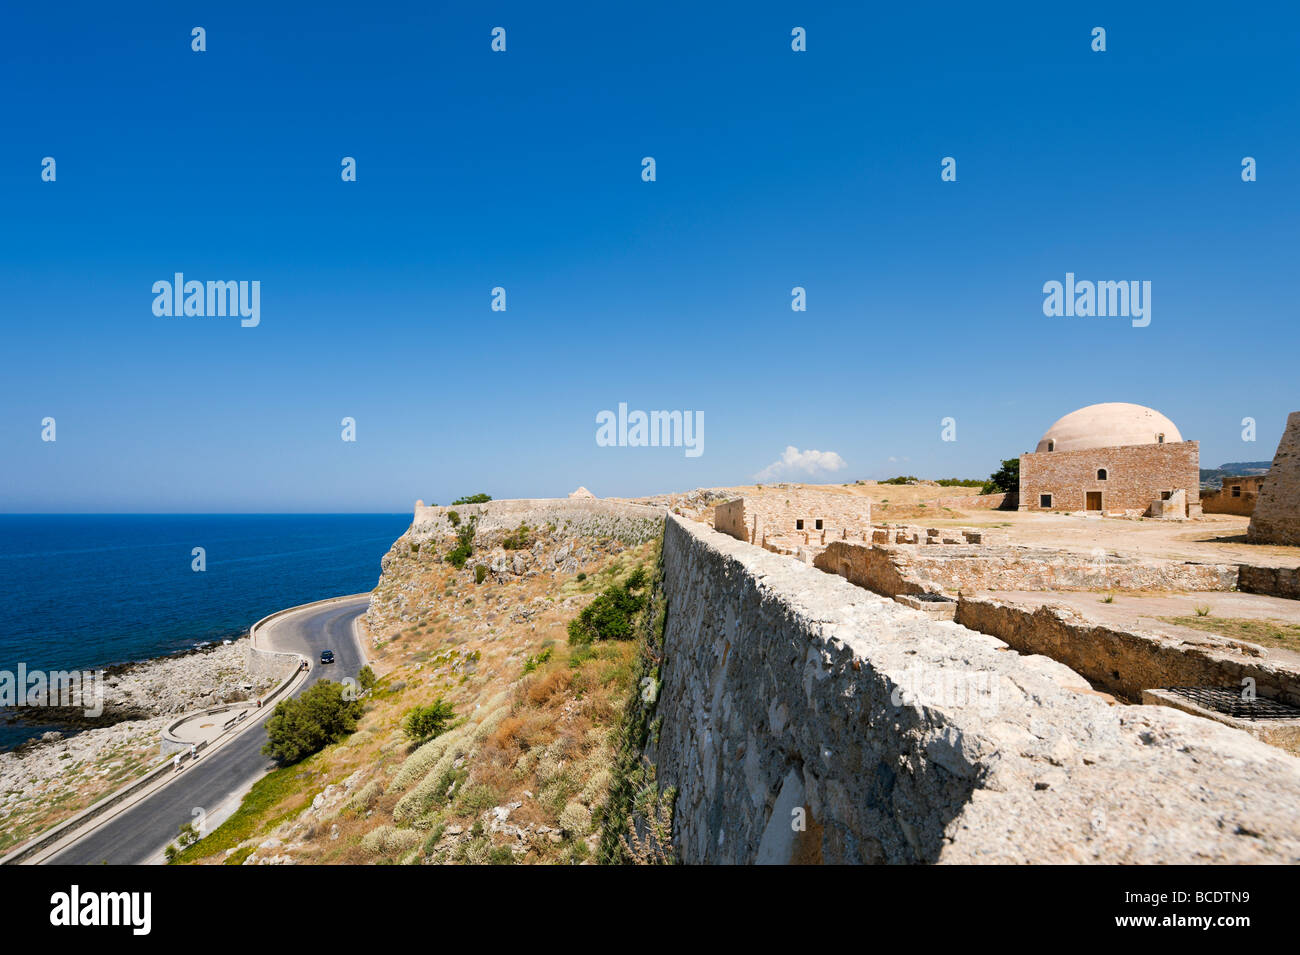 View from the walls of the 16th Century Venetian Fortezza (Fortress), Rethymnon, North West Coast, Crete, Greece Stock Photo